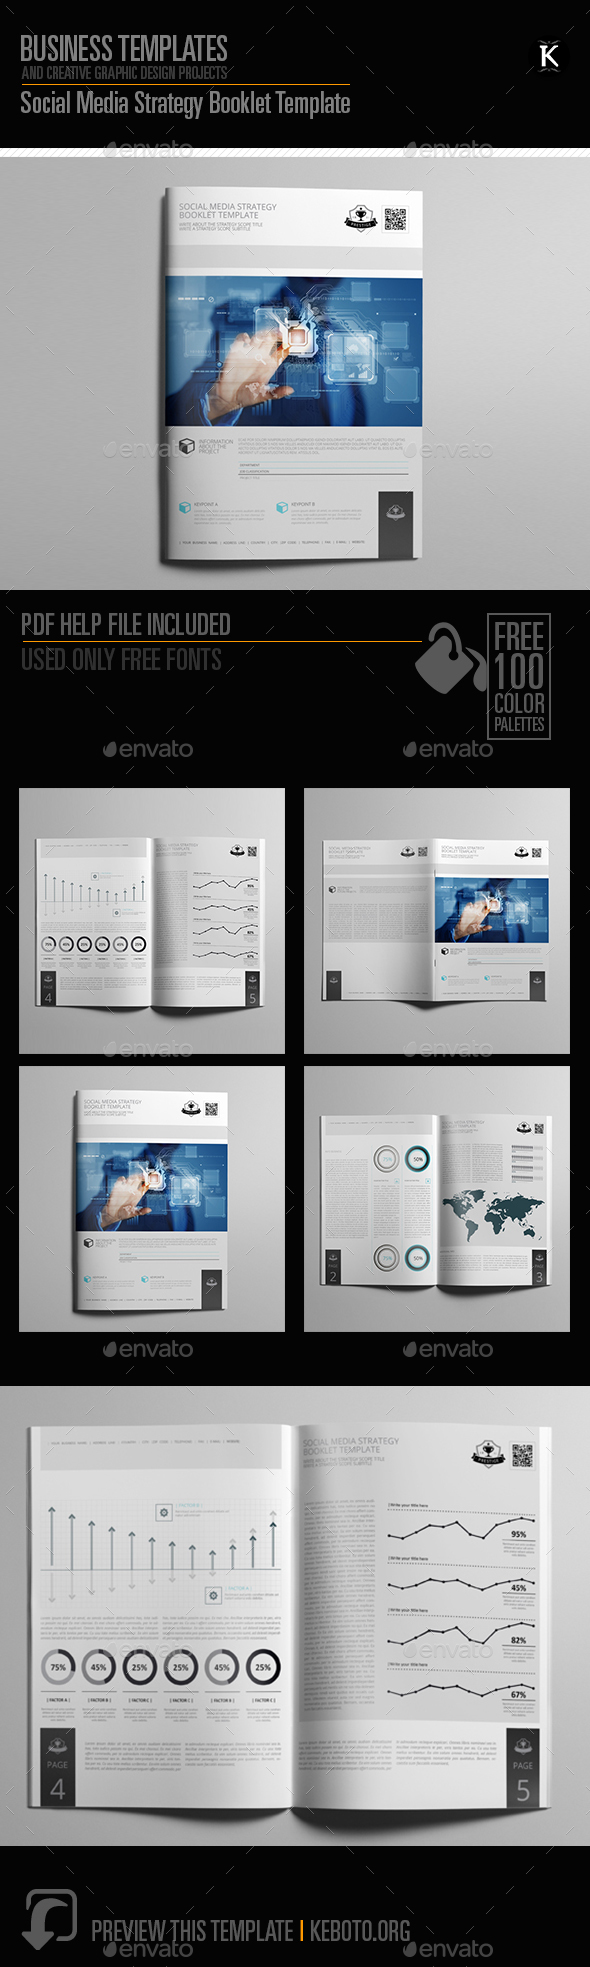 GraphicRiver Social Media Strategy Booklet Template 20556225